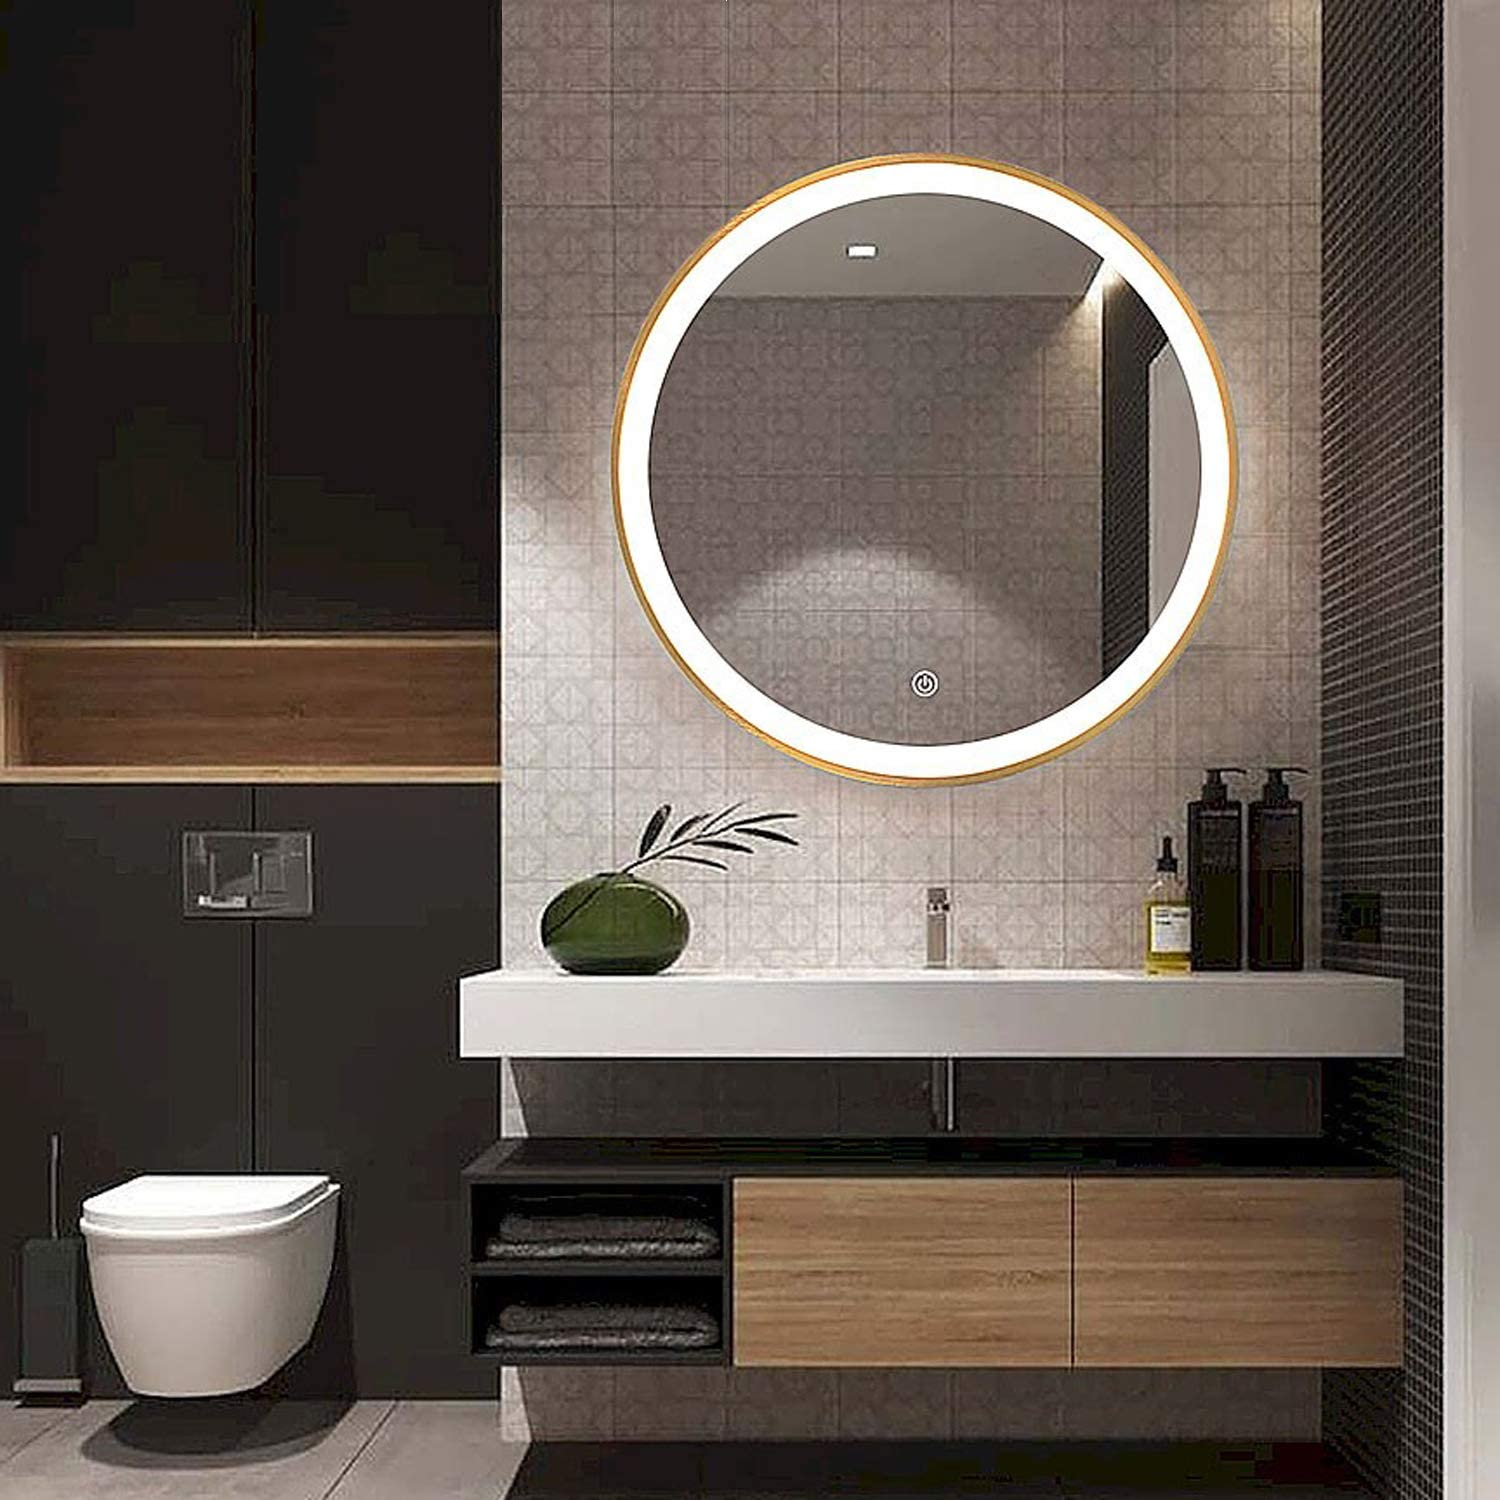 "Beauty4U 19.7""Round Mirror for Bathroom, LED Gold Circle Wall Mirror, Light Up Backlit Touch Make-up Vanity Mirror Wall Décor"